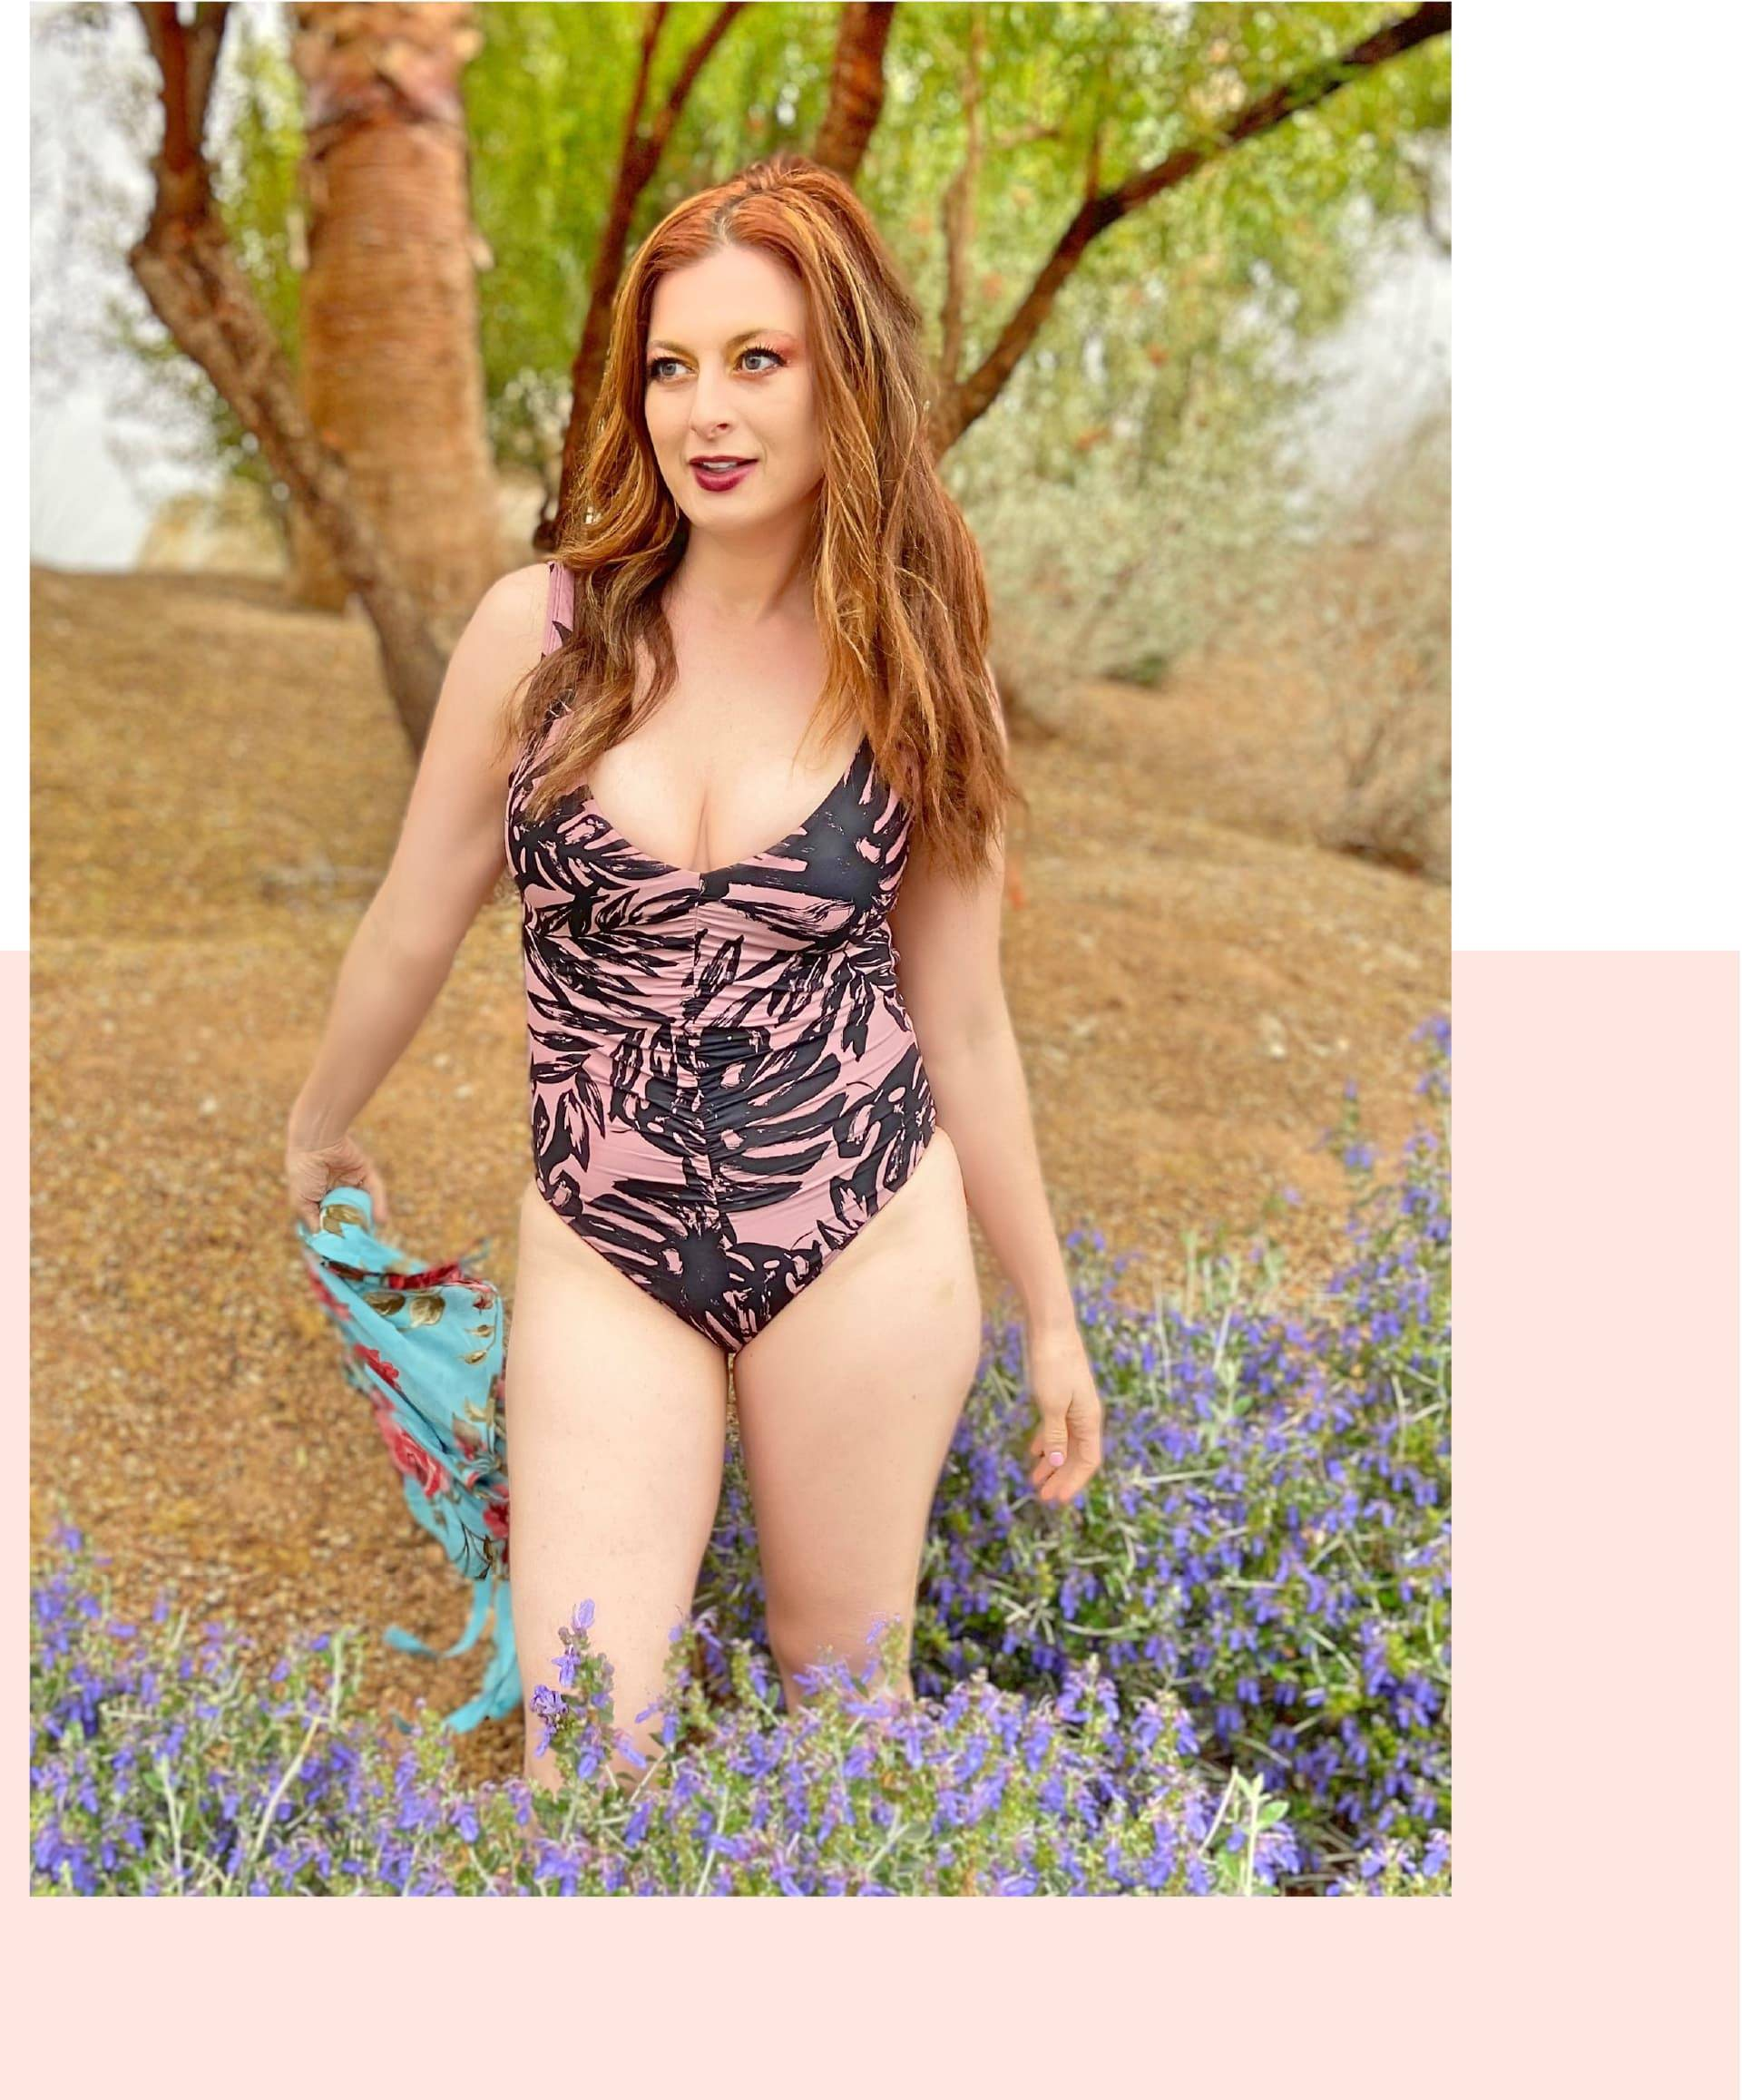 Rachel Reilly is wearing SKYE's Jennifer one-piece from the Sulawesi collection.